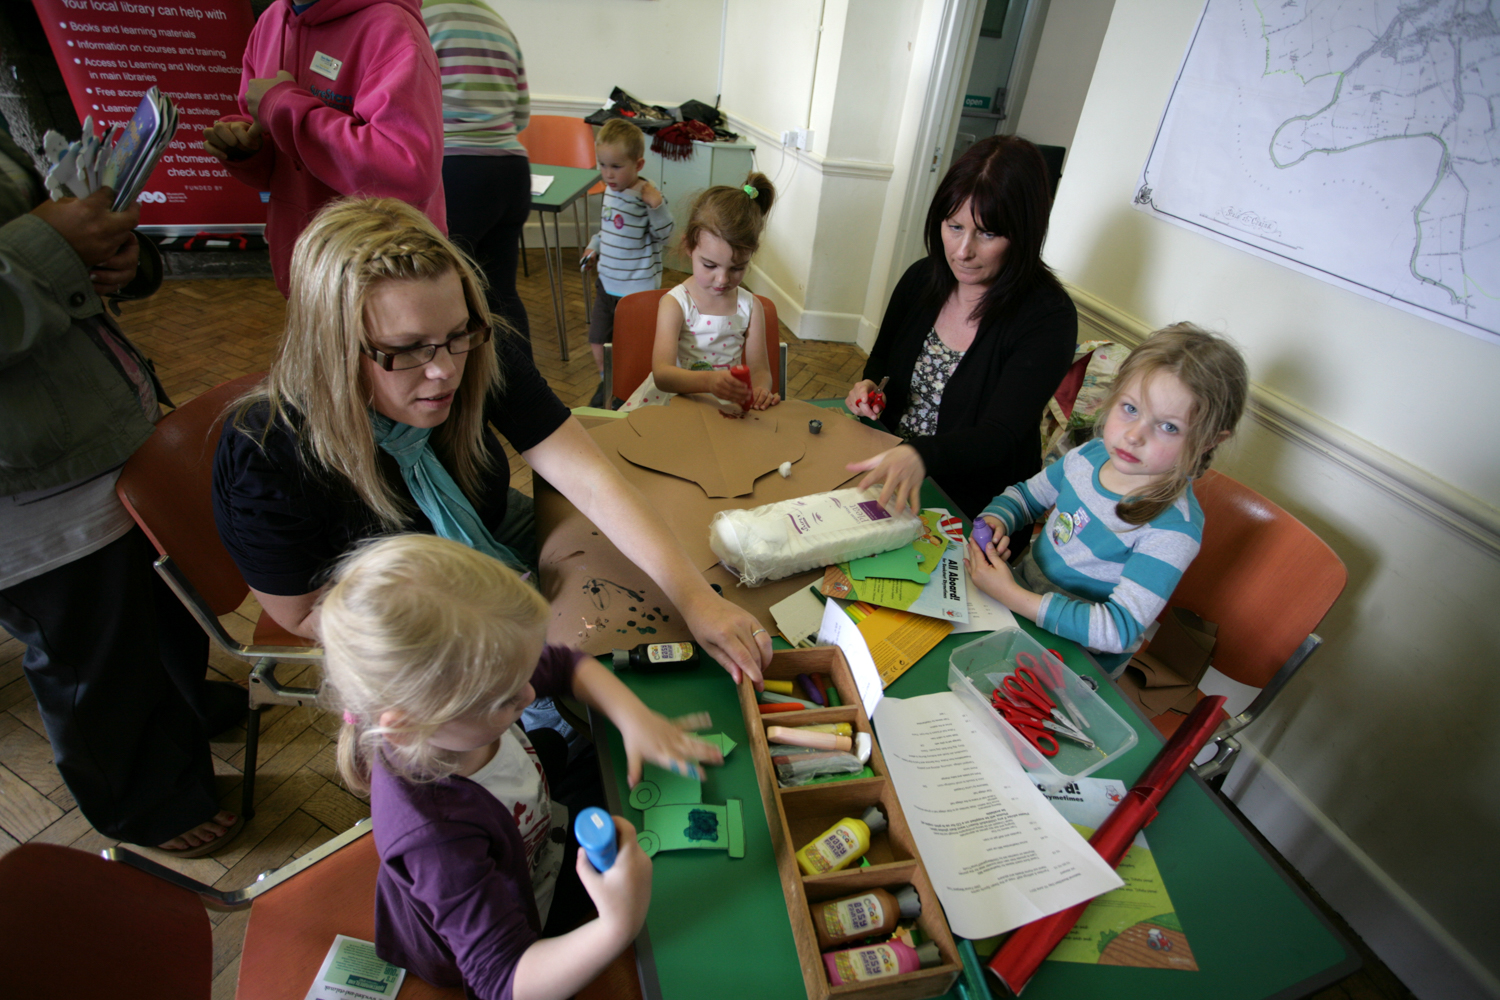 PICTORIAL_BERWICK_bookstart-heatherslaw-funded-day-out-educational-extended-services-lorna-chappell-organised-fire-police-9817.jpg